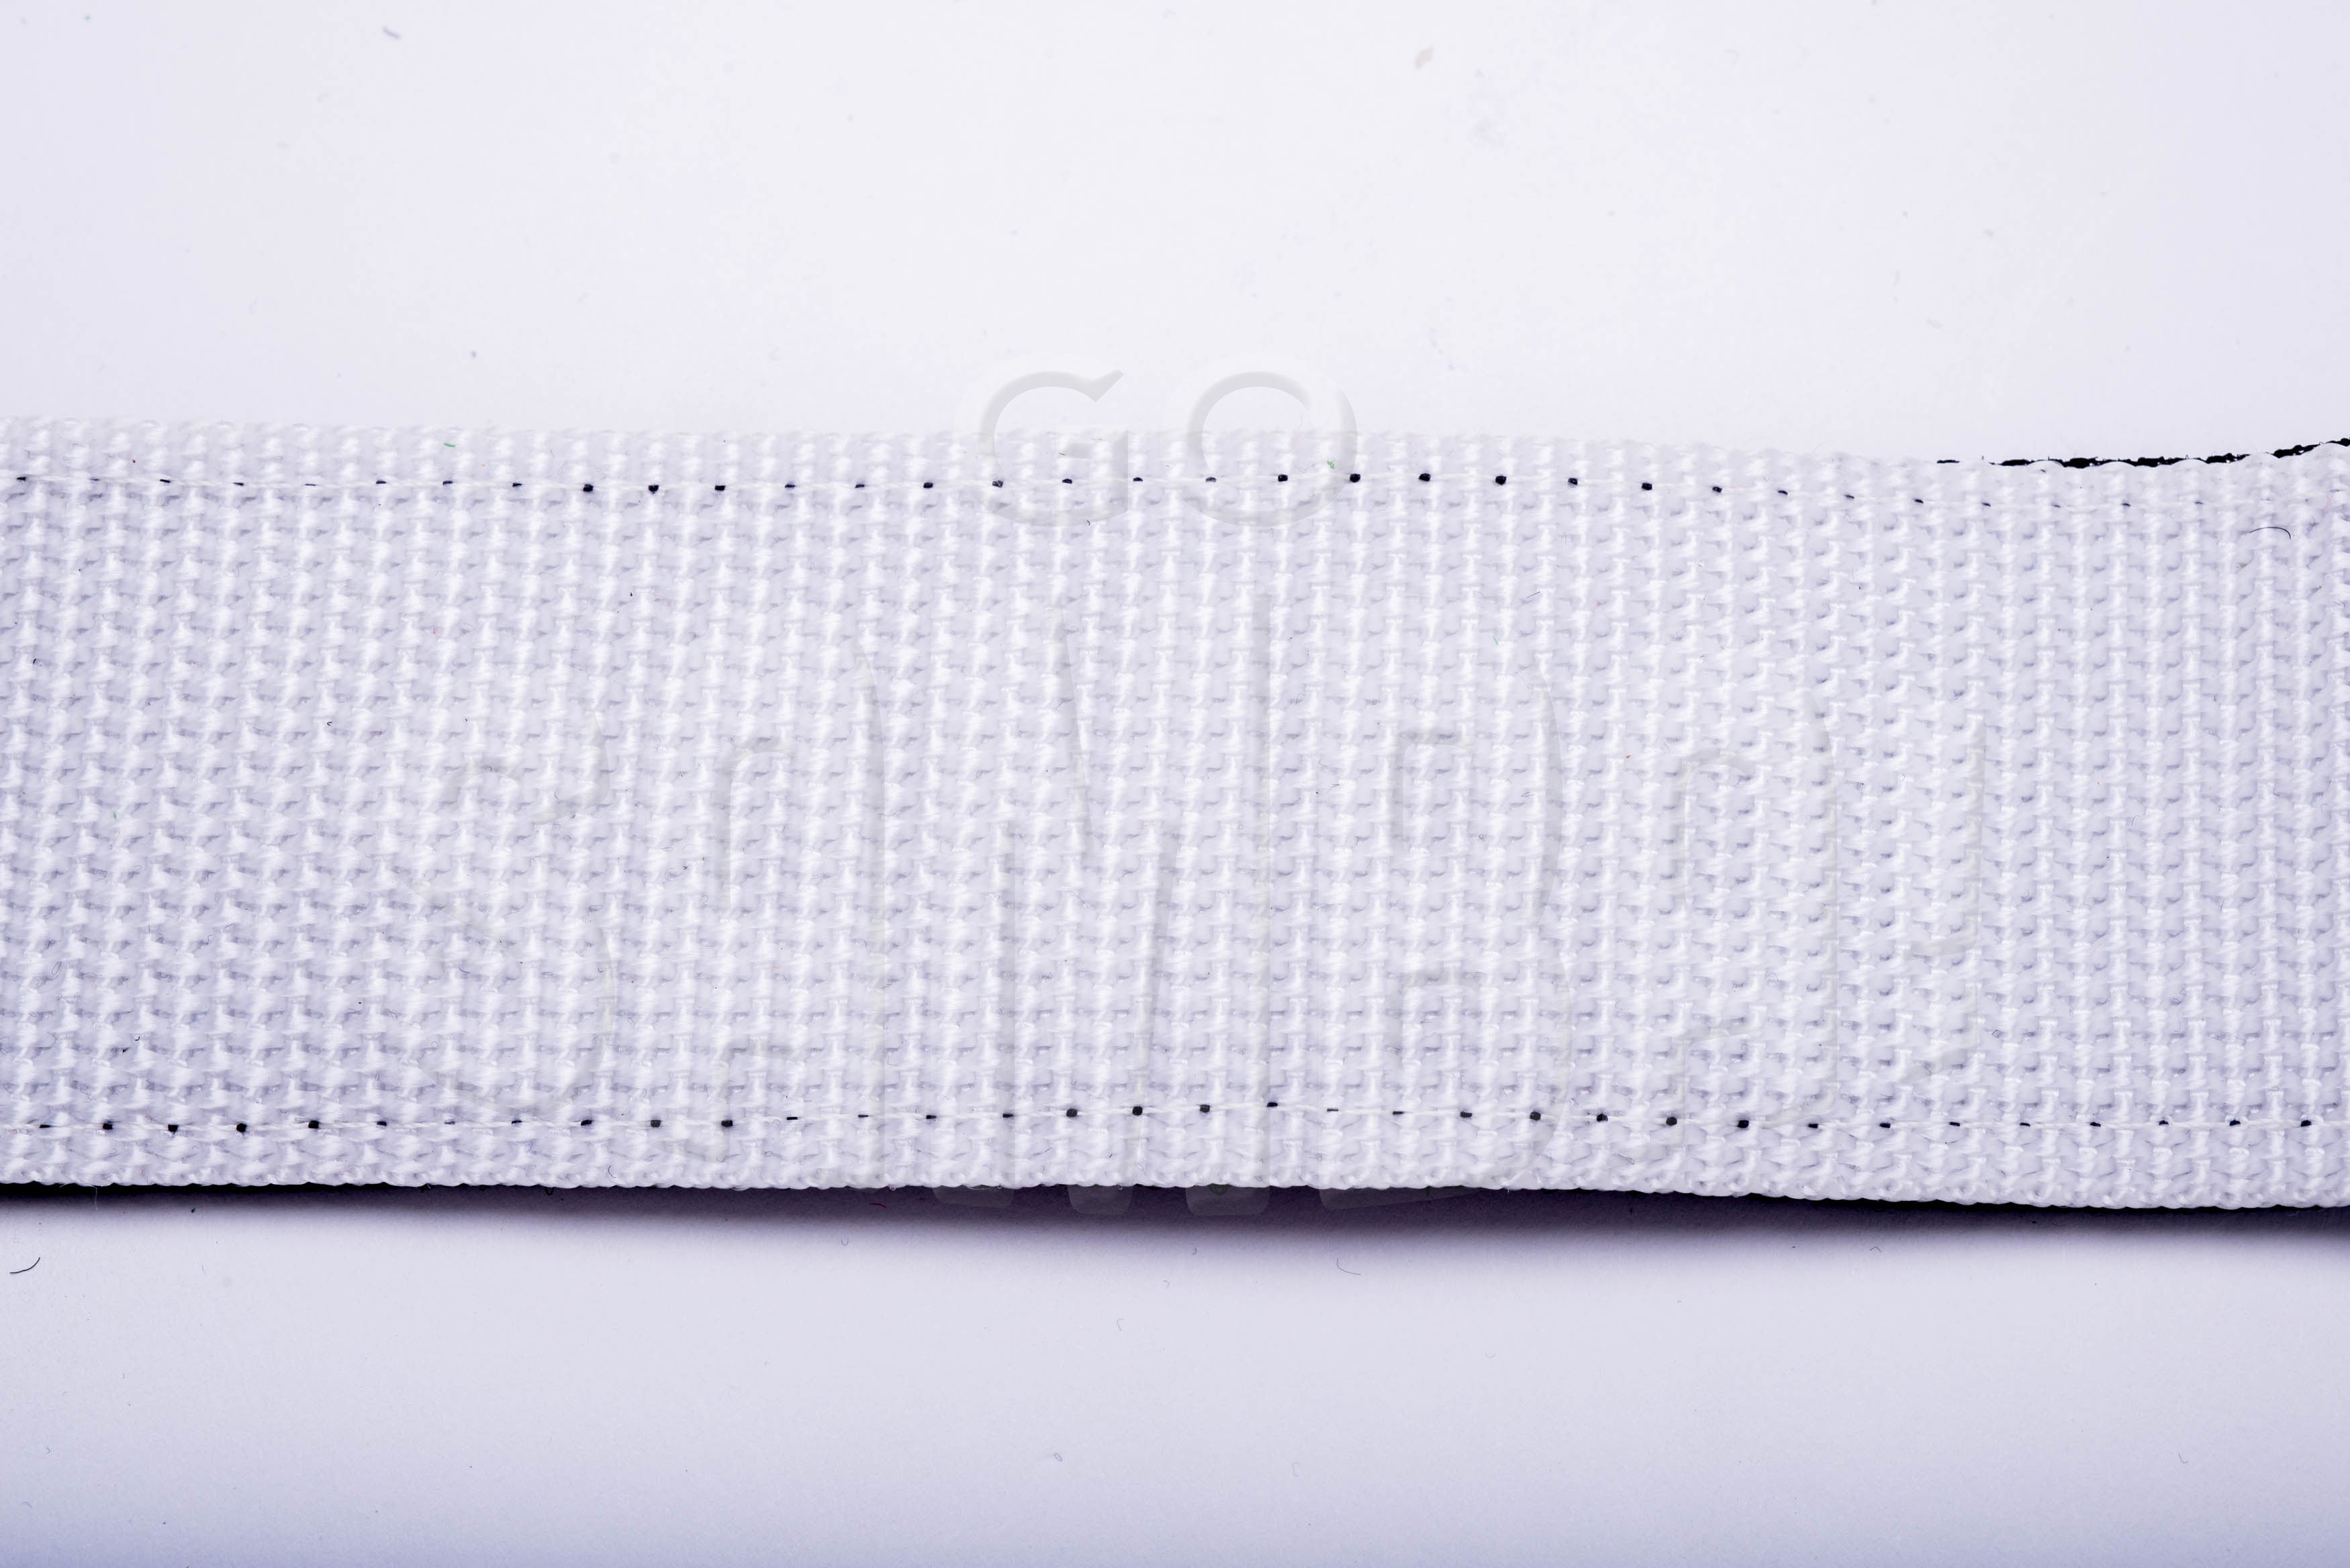 White strap on white background.